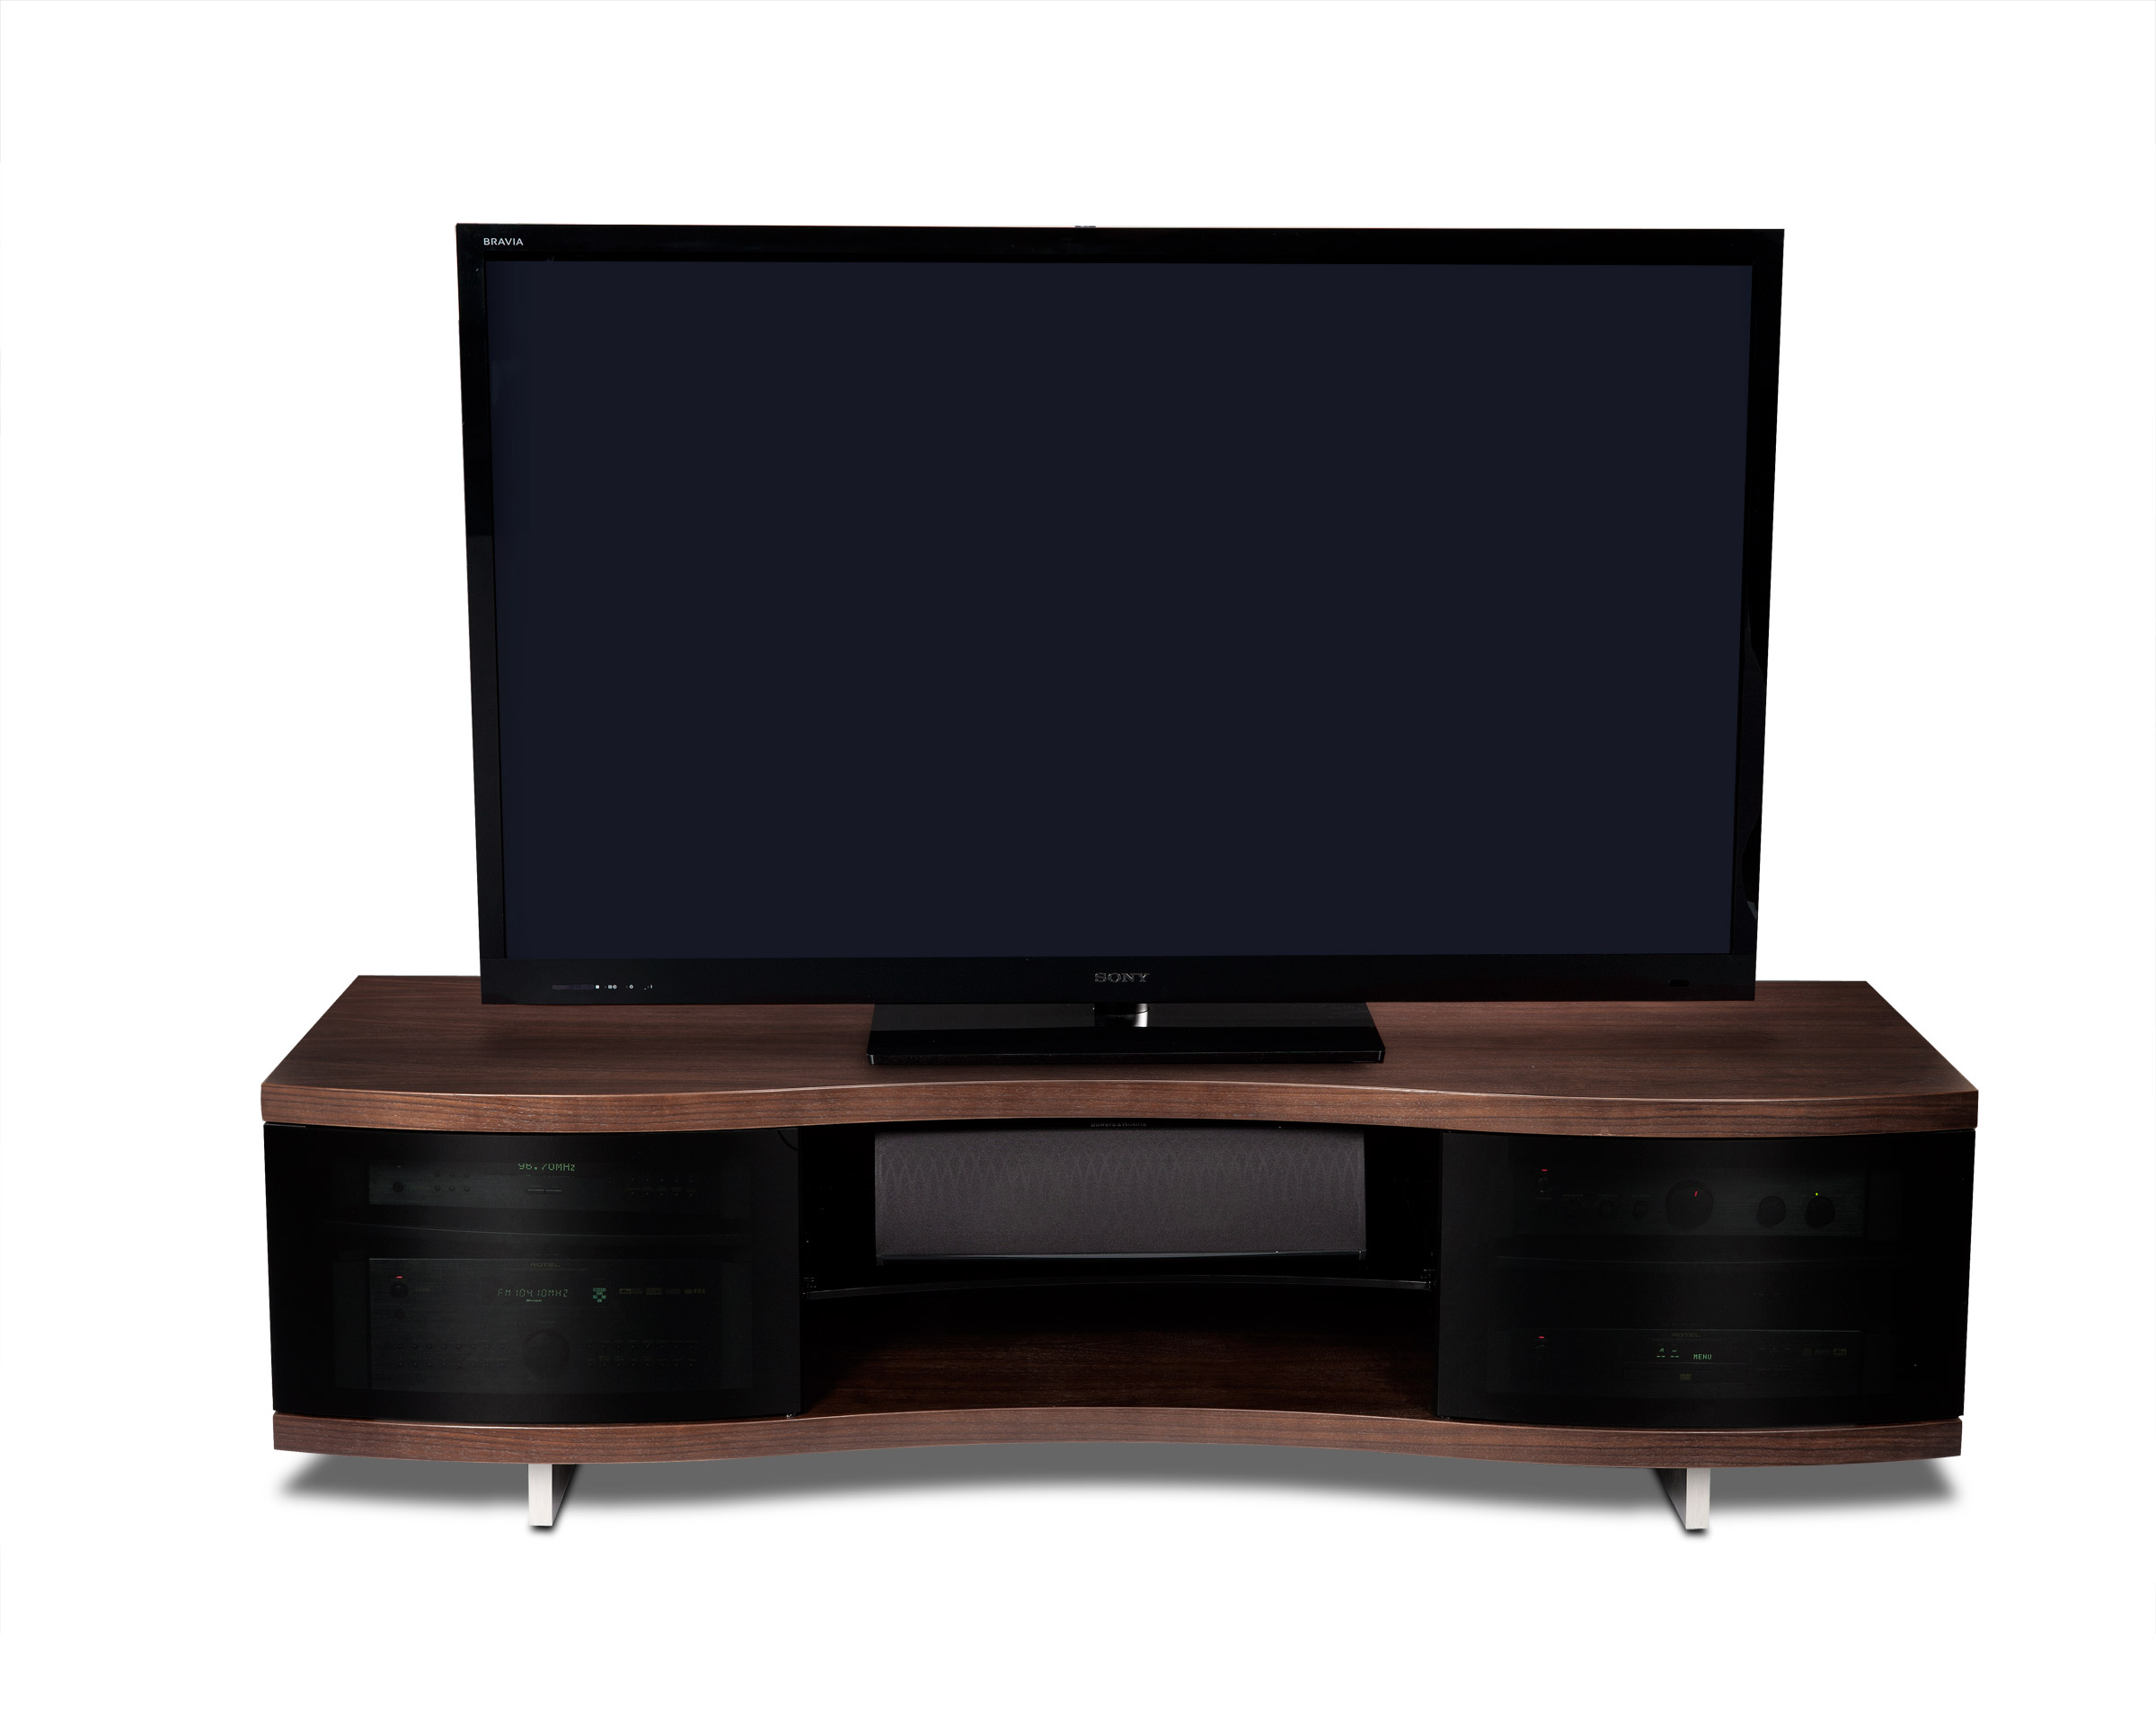 stands racks furniture products for bdi series cw to and main ii av avion er tvs image walnut up tv chocolate cupboard